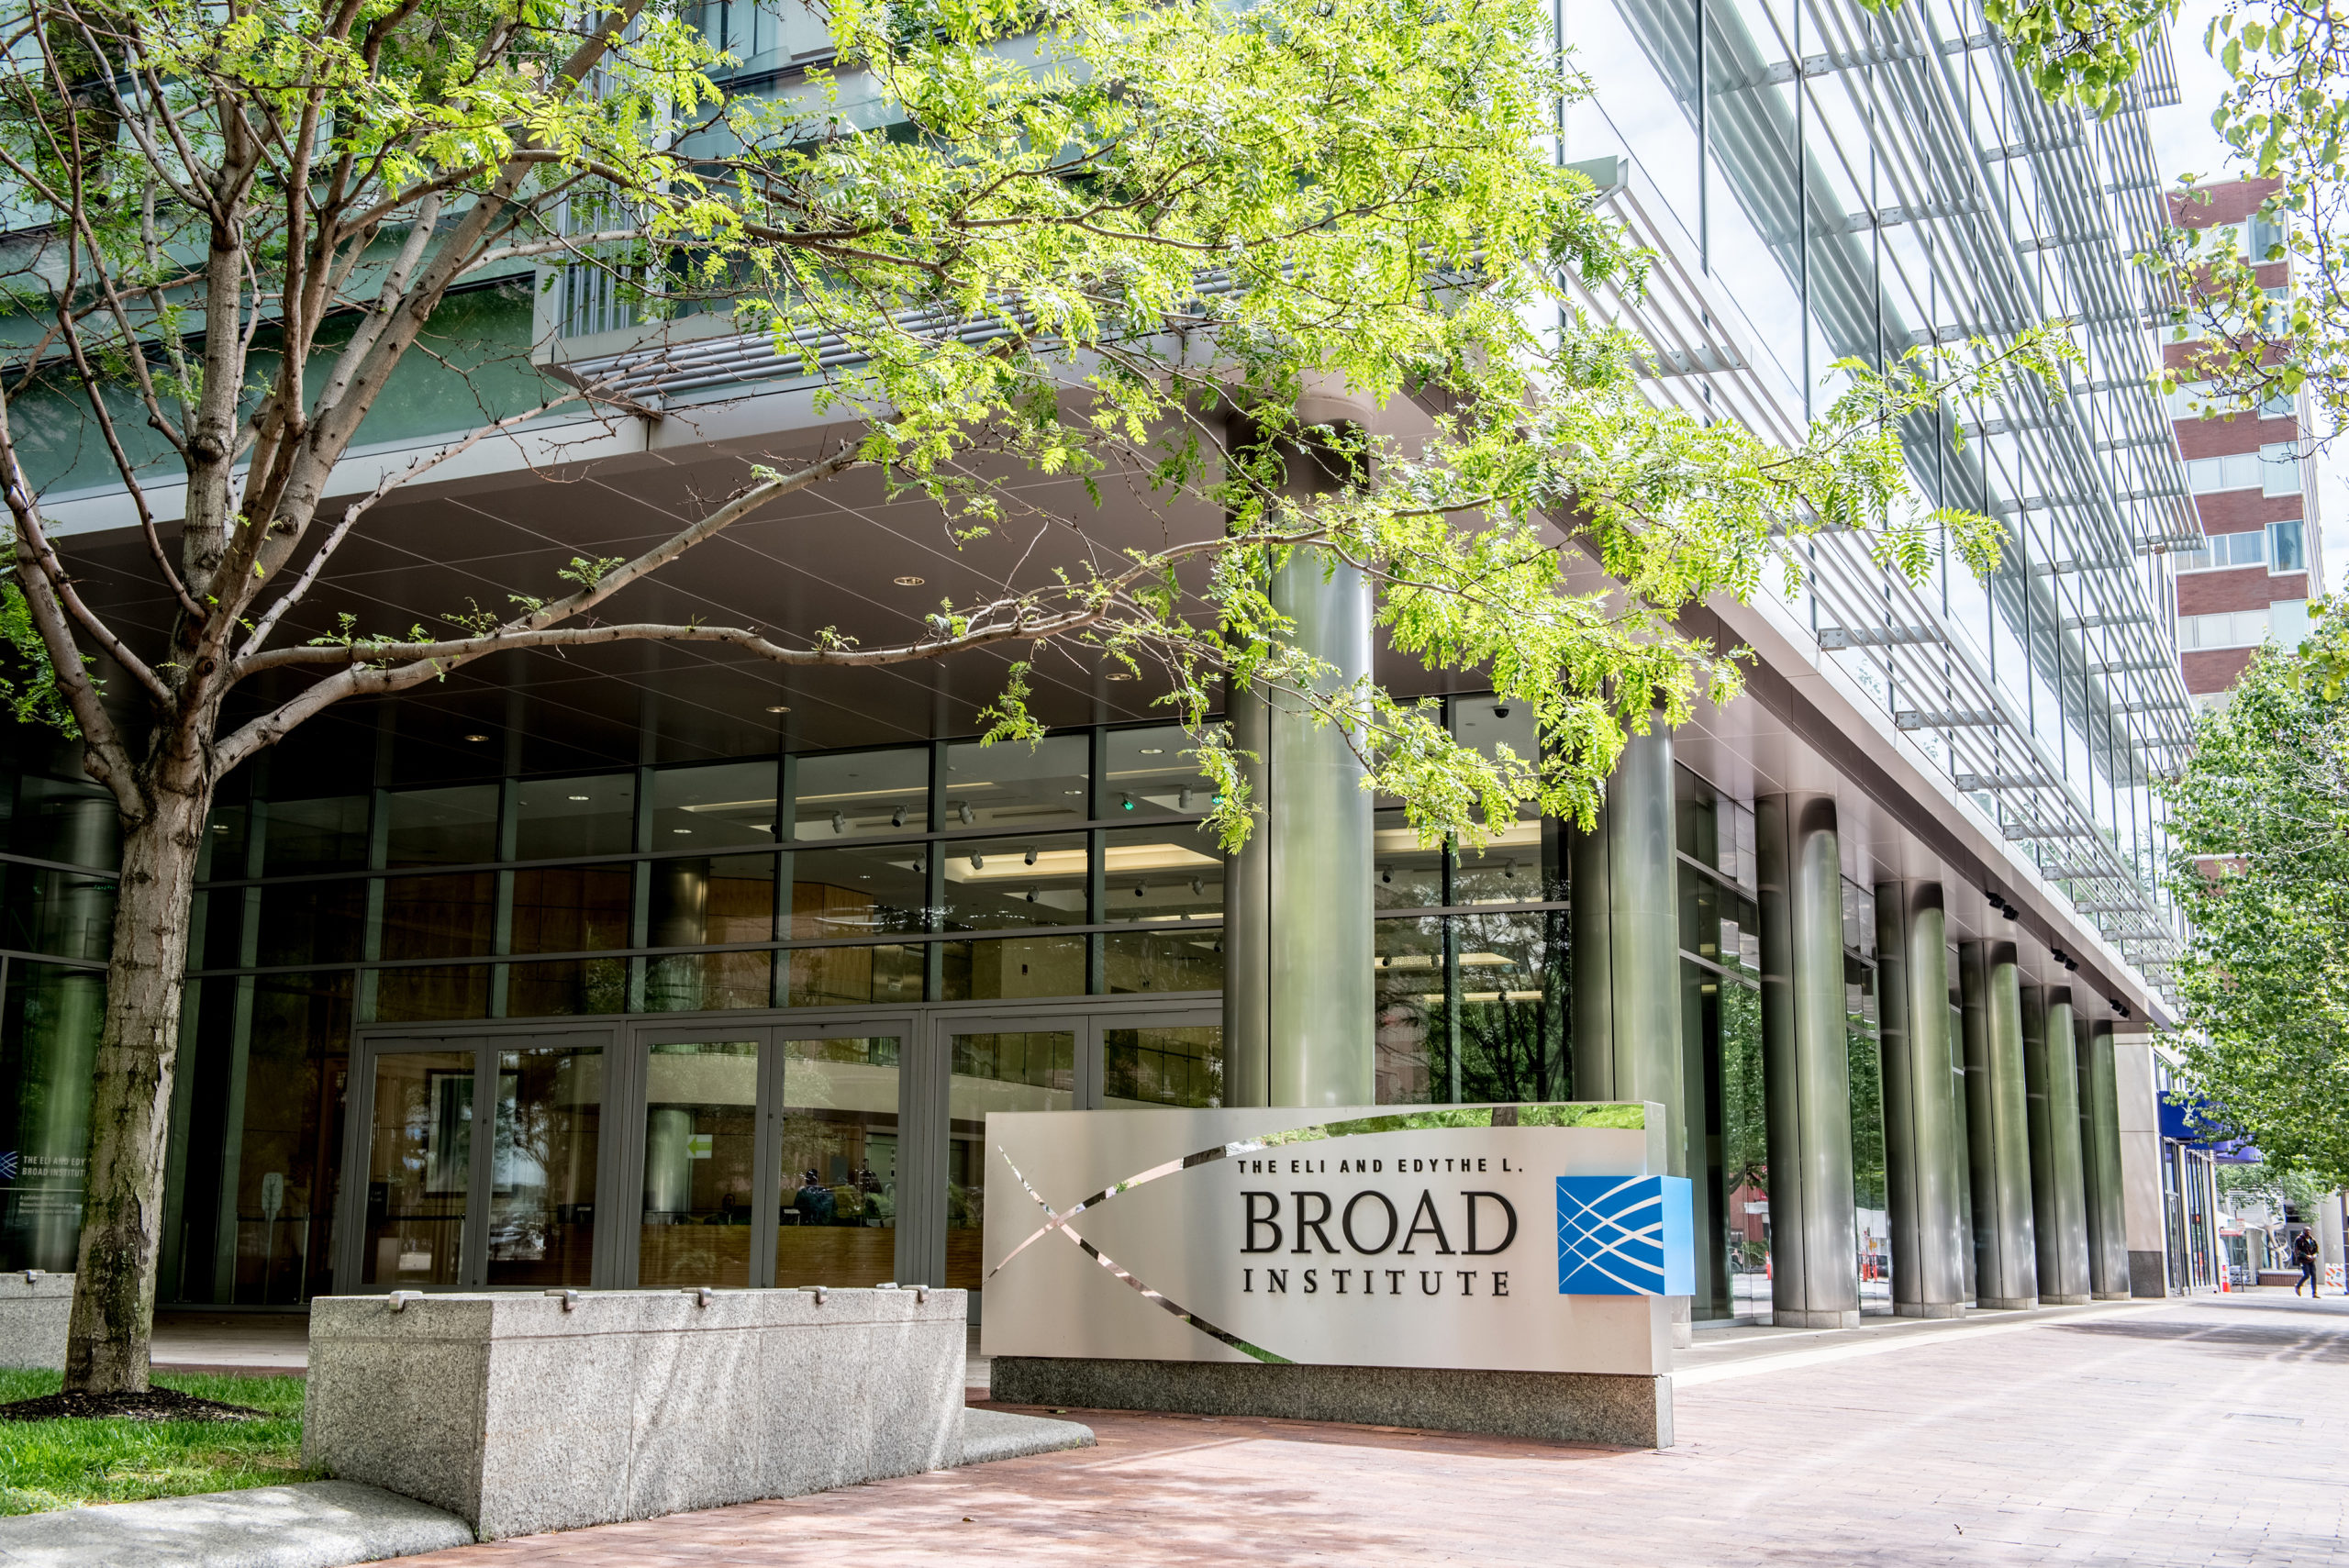 Broad Institute Brings Biology and Machine Learning Together in New Center